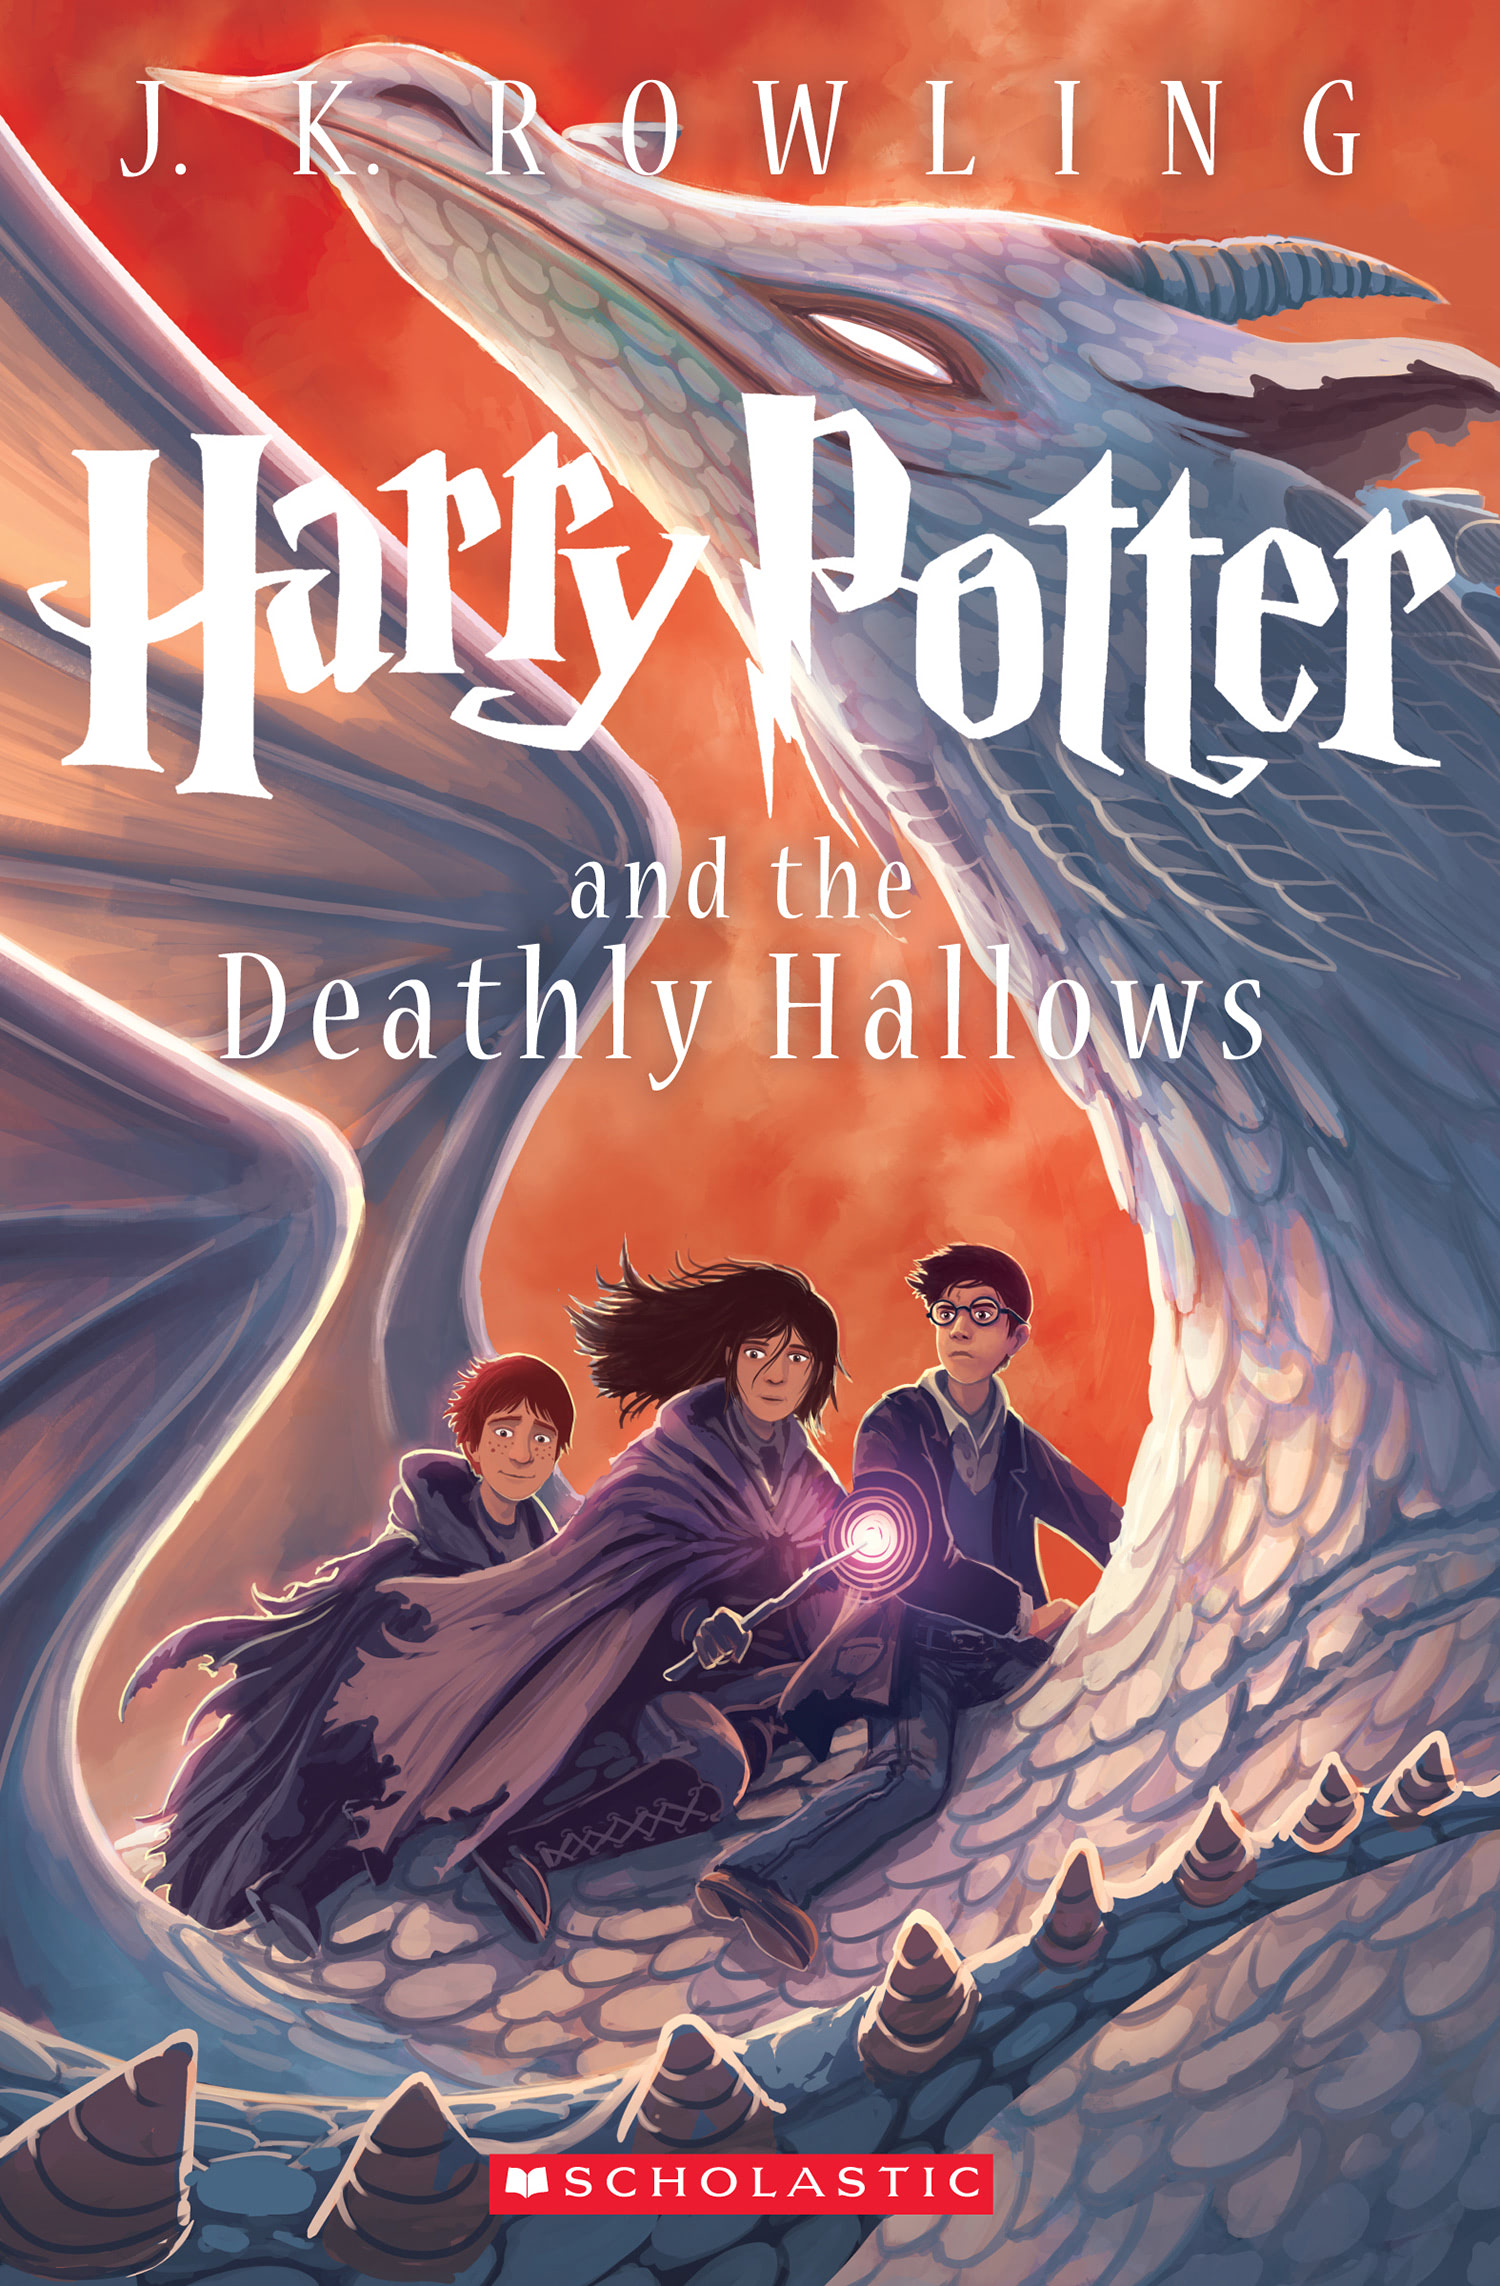 'Deathly Hallows' US children's edition (2013)